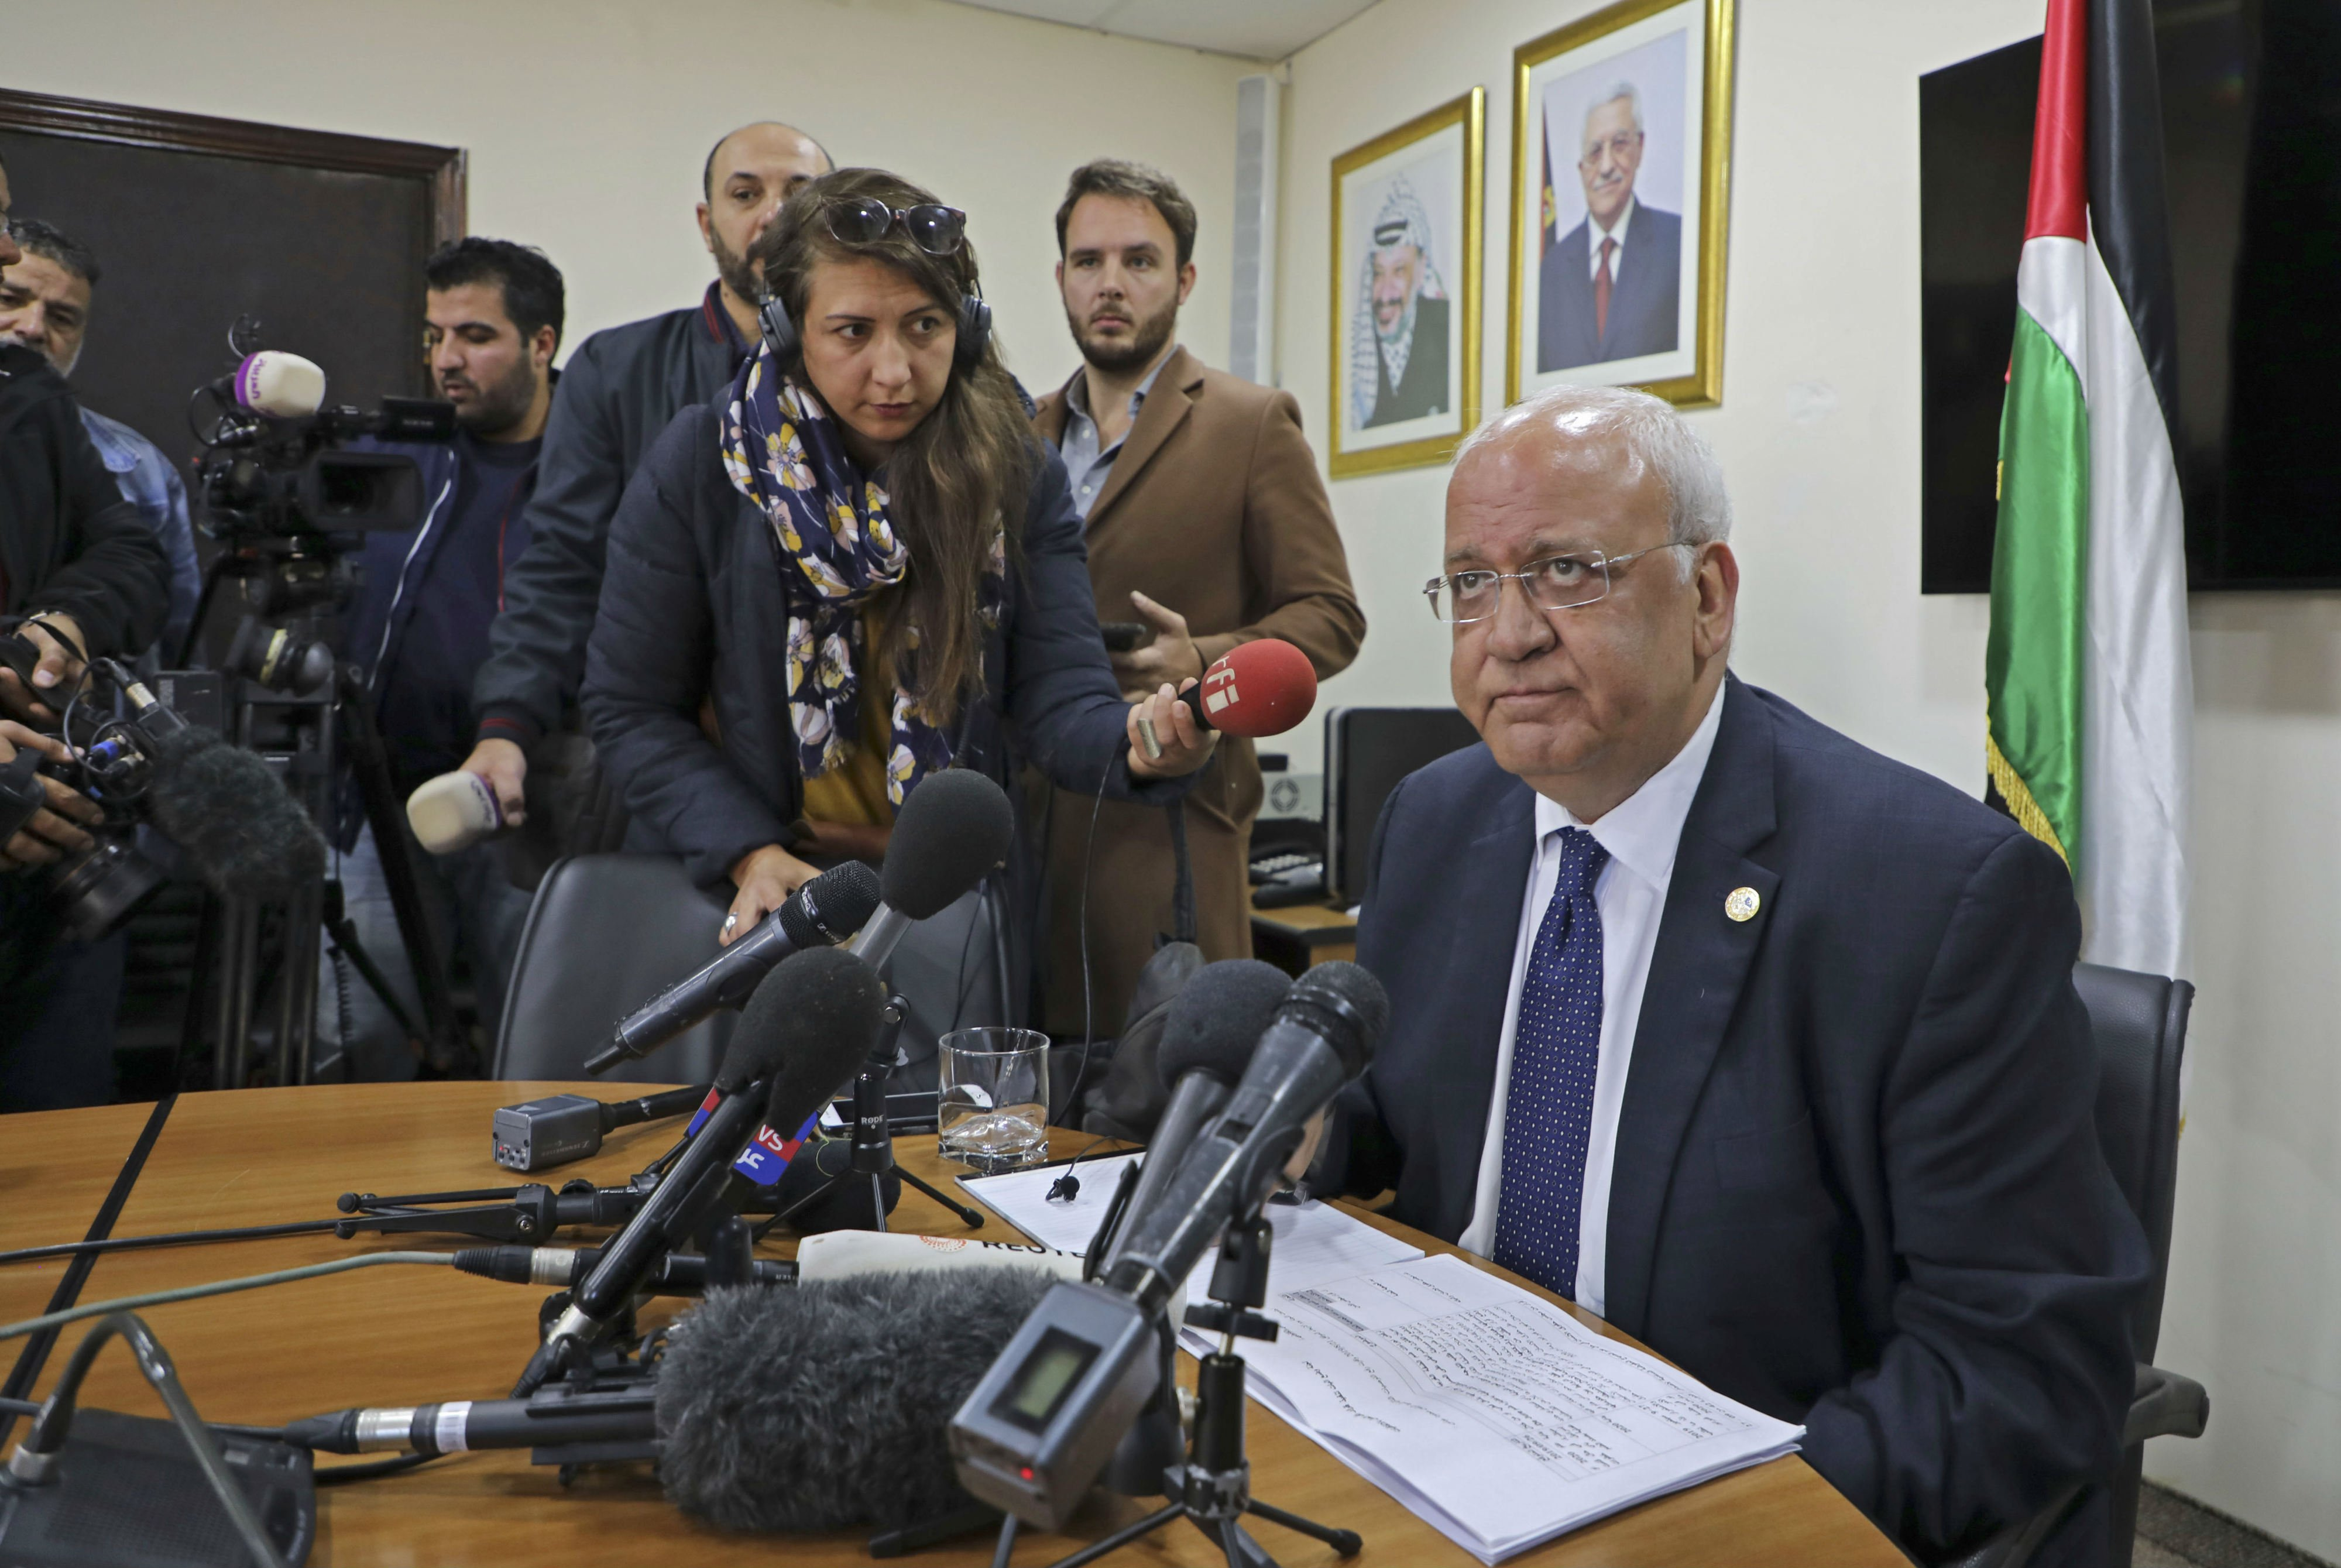 Saeb Erekat (R), Secretary General of the Palestine Liberation Organization (PLO) and chief Palestinian negotiator, speaks during a press conference in the Palestinian West Bank city of Ramallah (AFP)